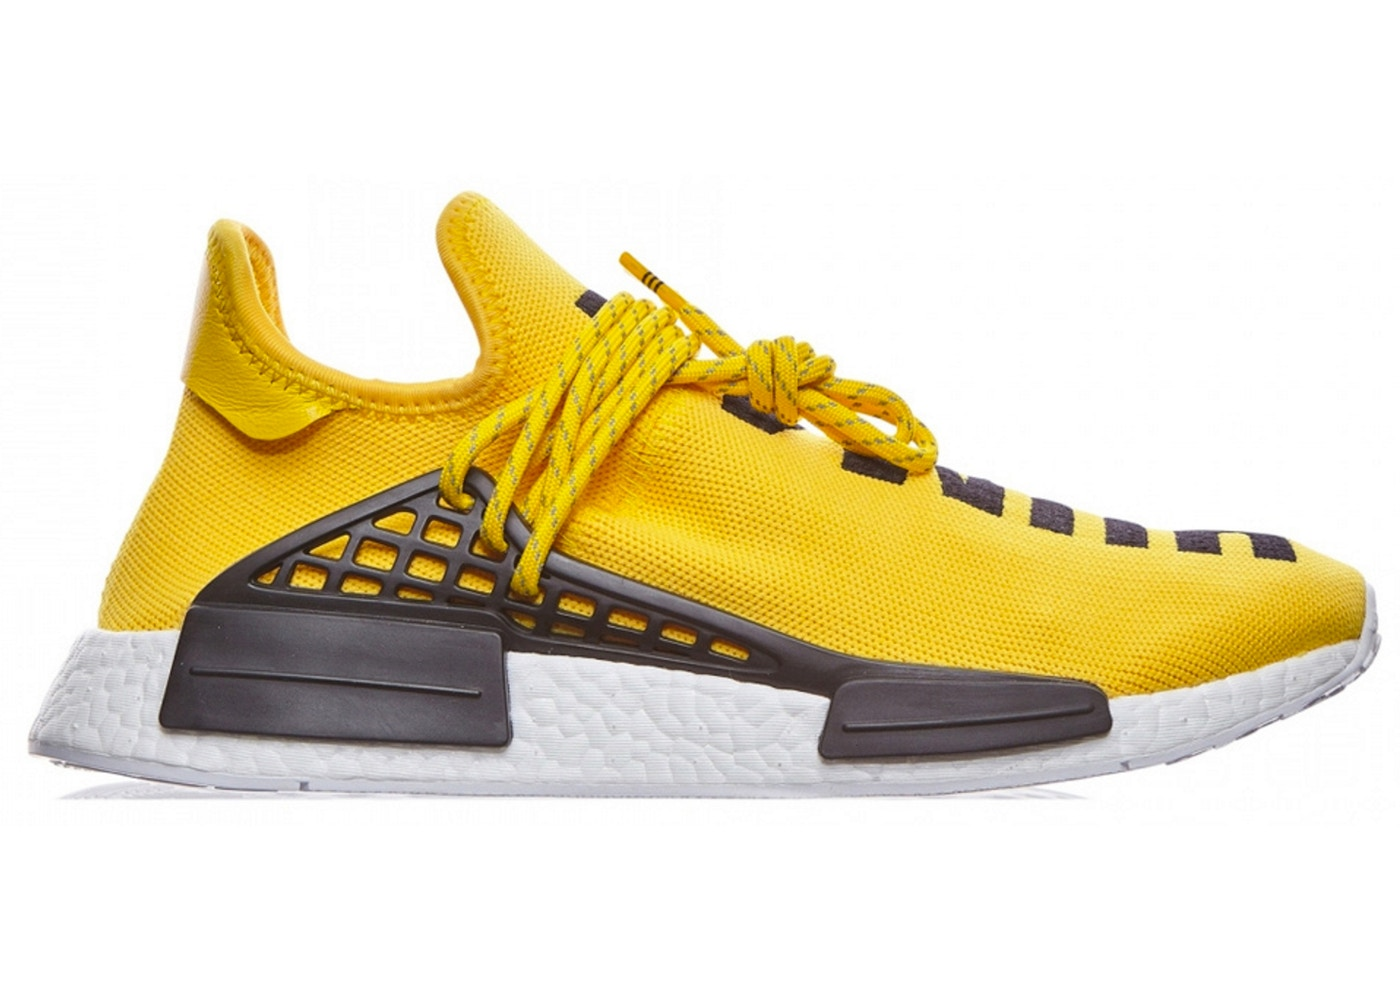 b5dea4cfa7551 adidas NMD HU Pharrell Human Race Yellow - BB0619